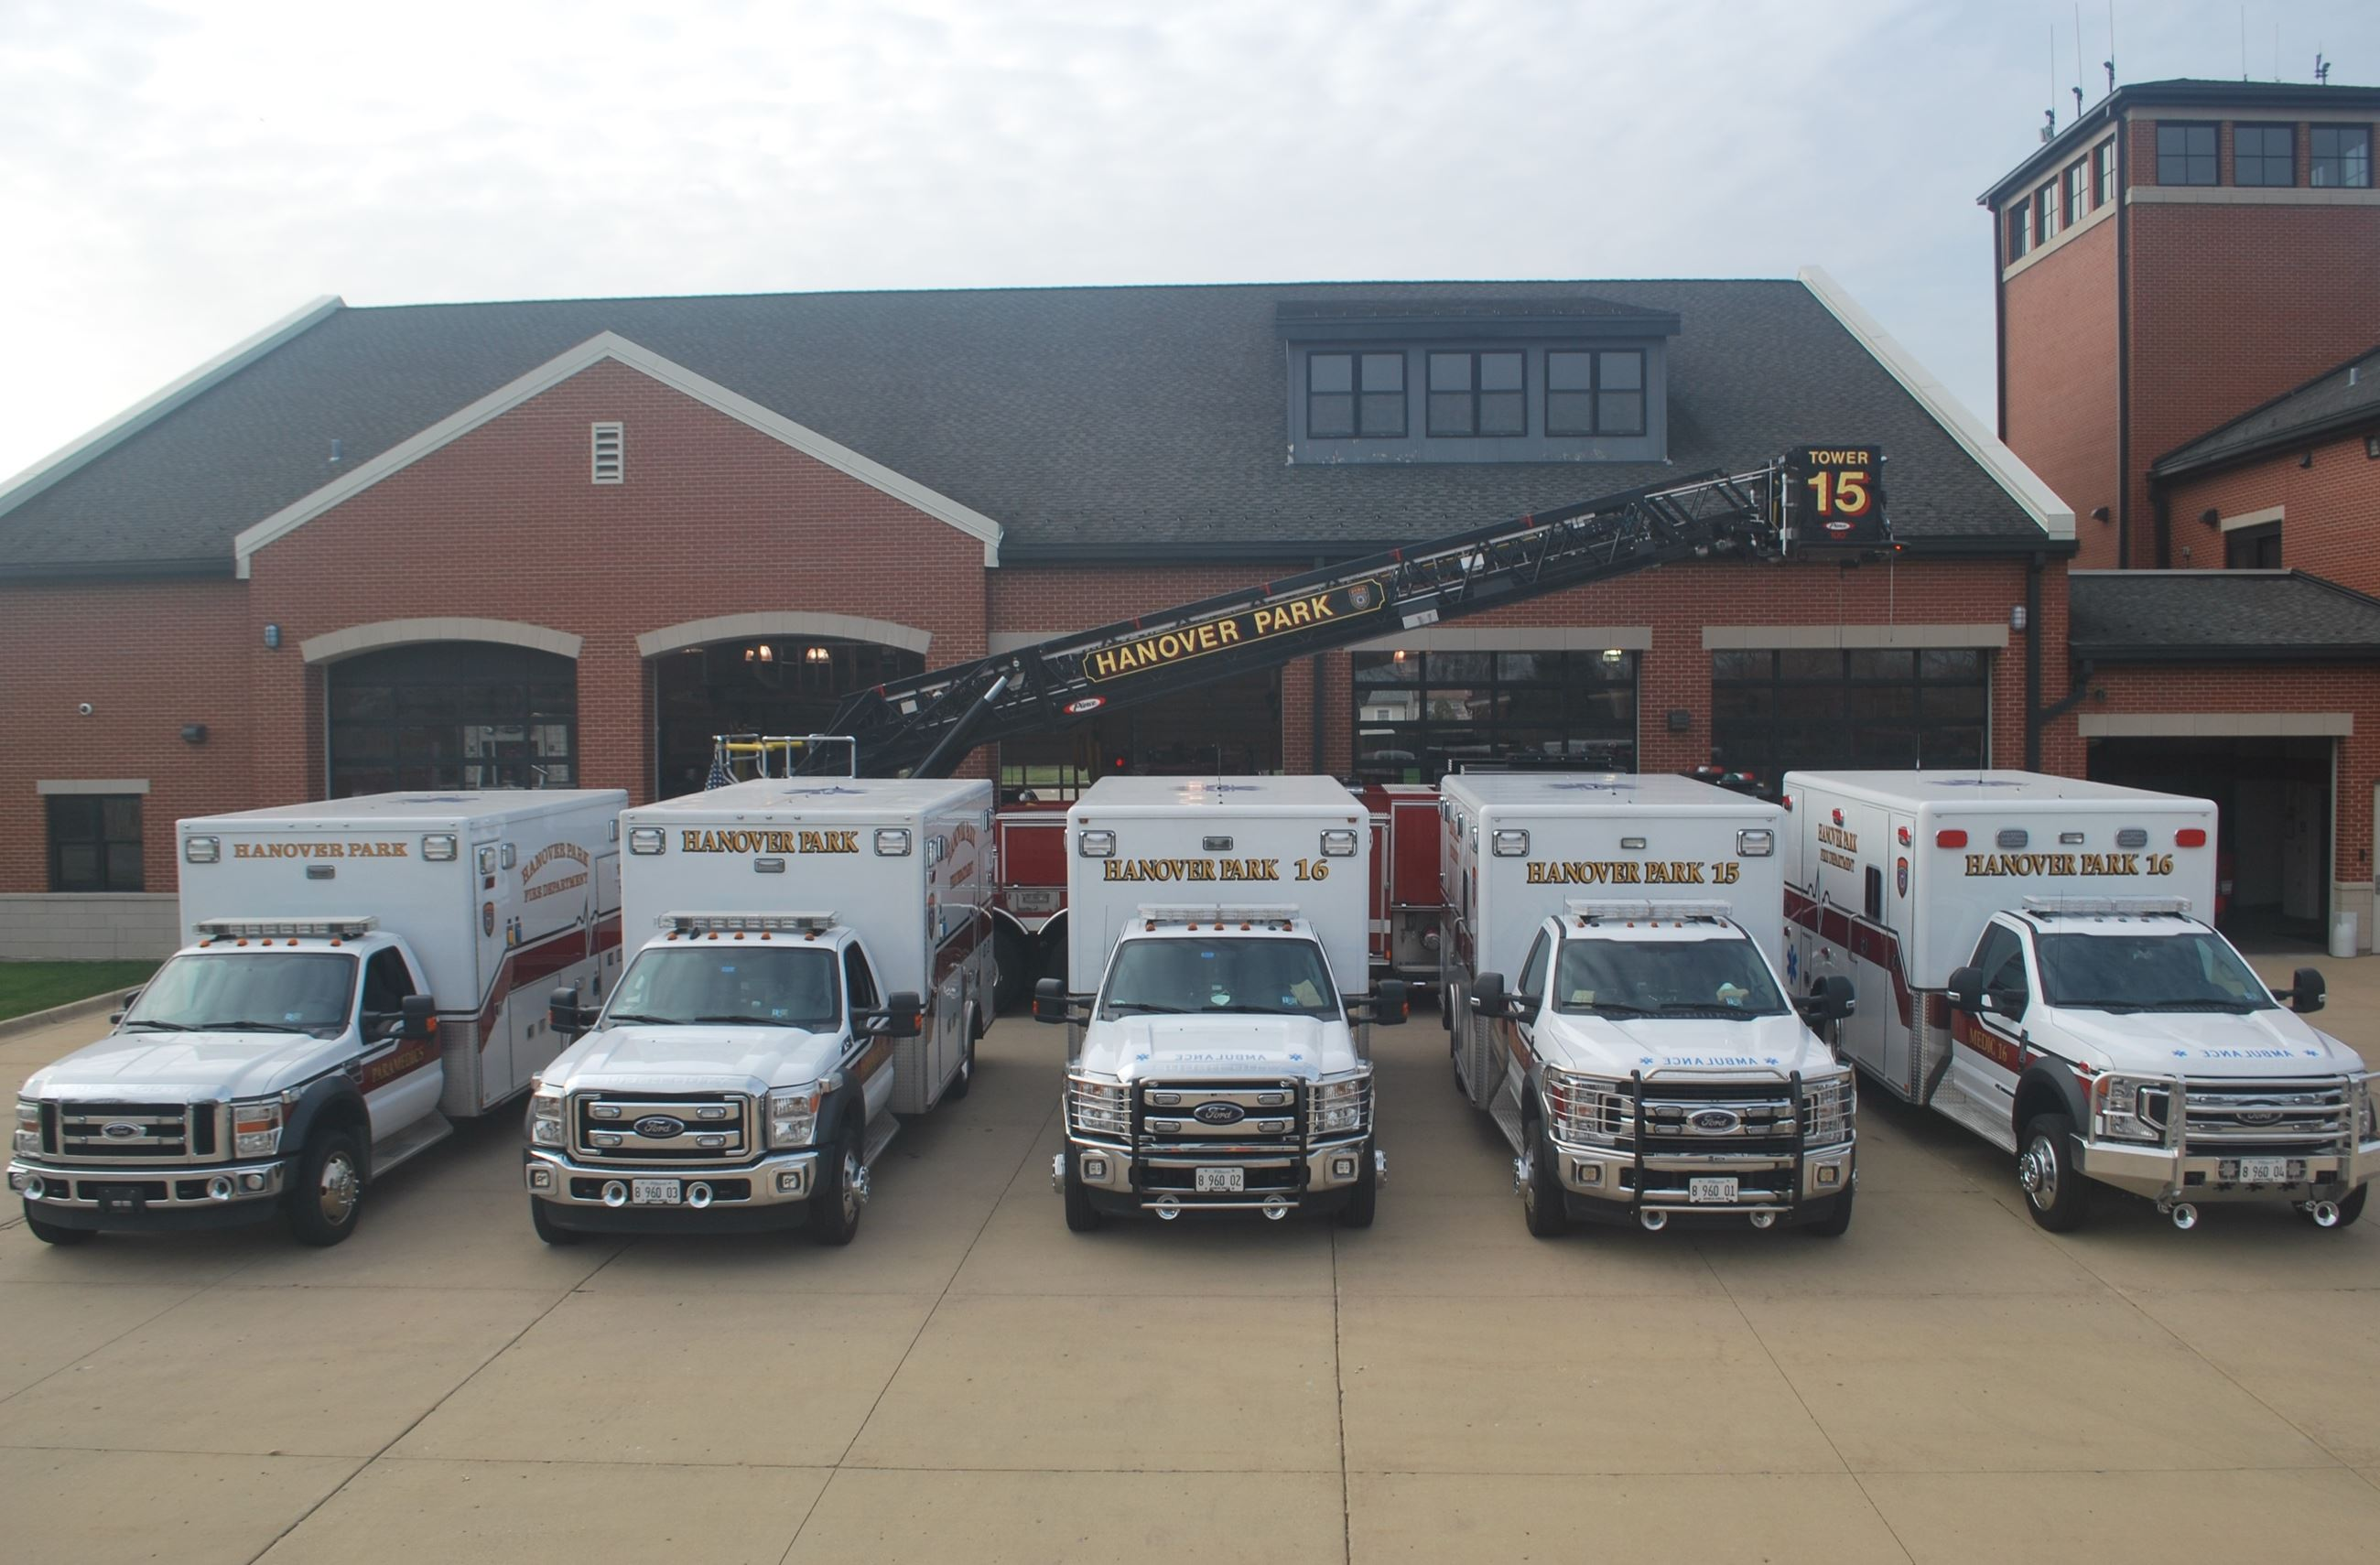 Hanover Park Fire Department Ambulance Pictures 2021